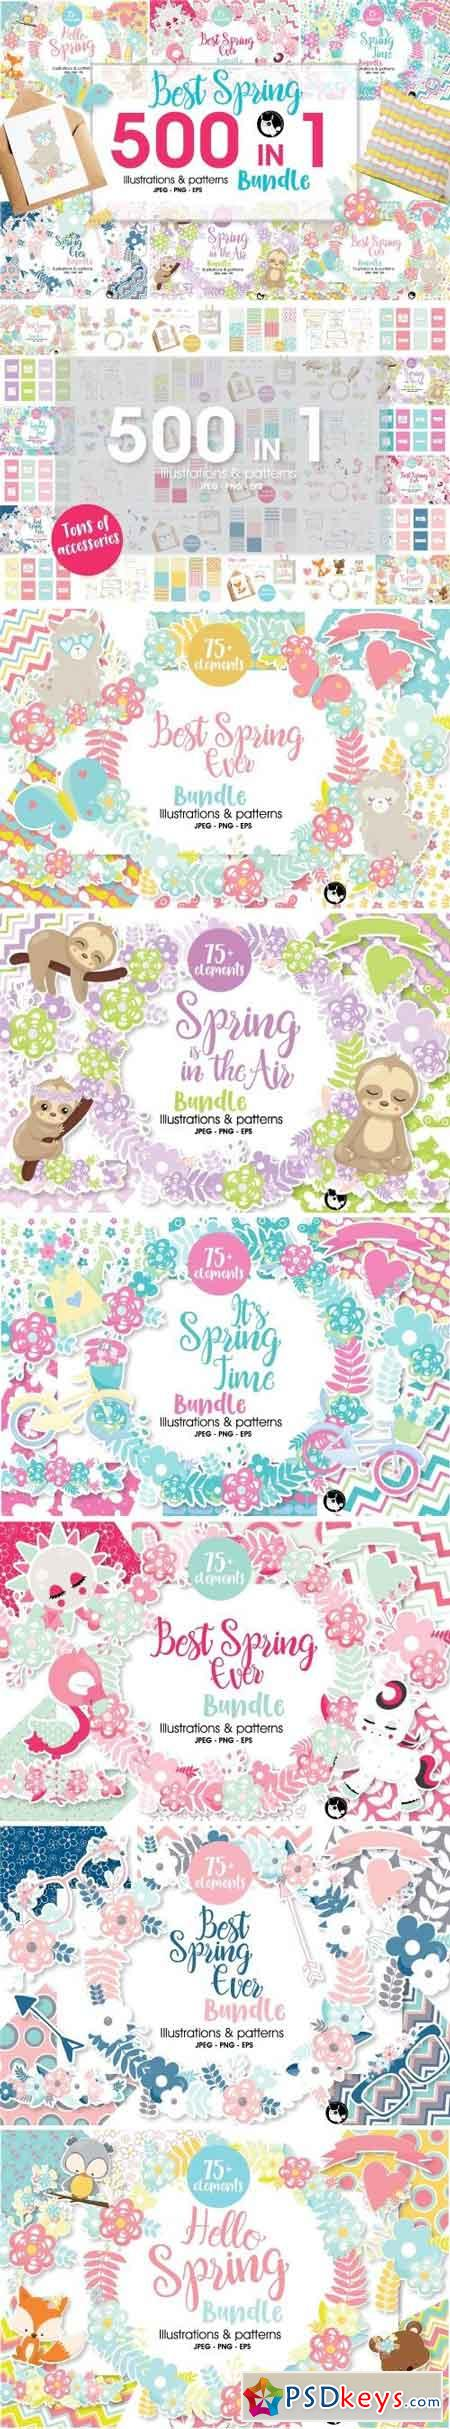 Mega Spring Bundle - 500 in 1 2467491